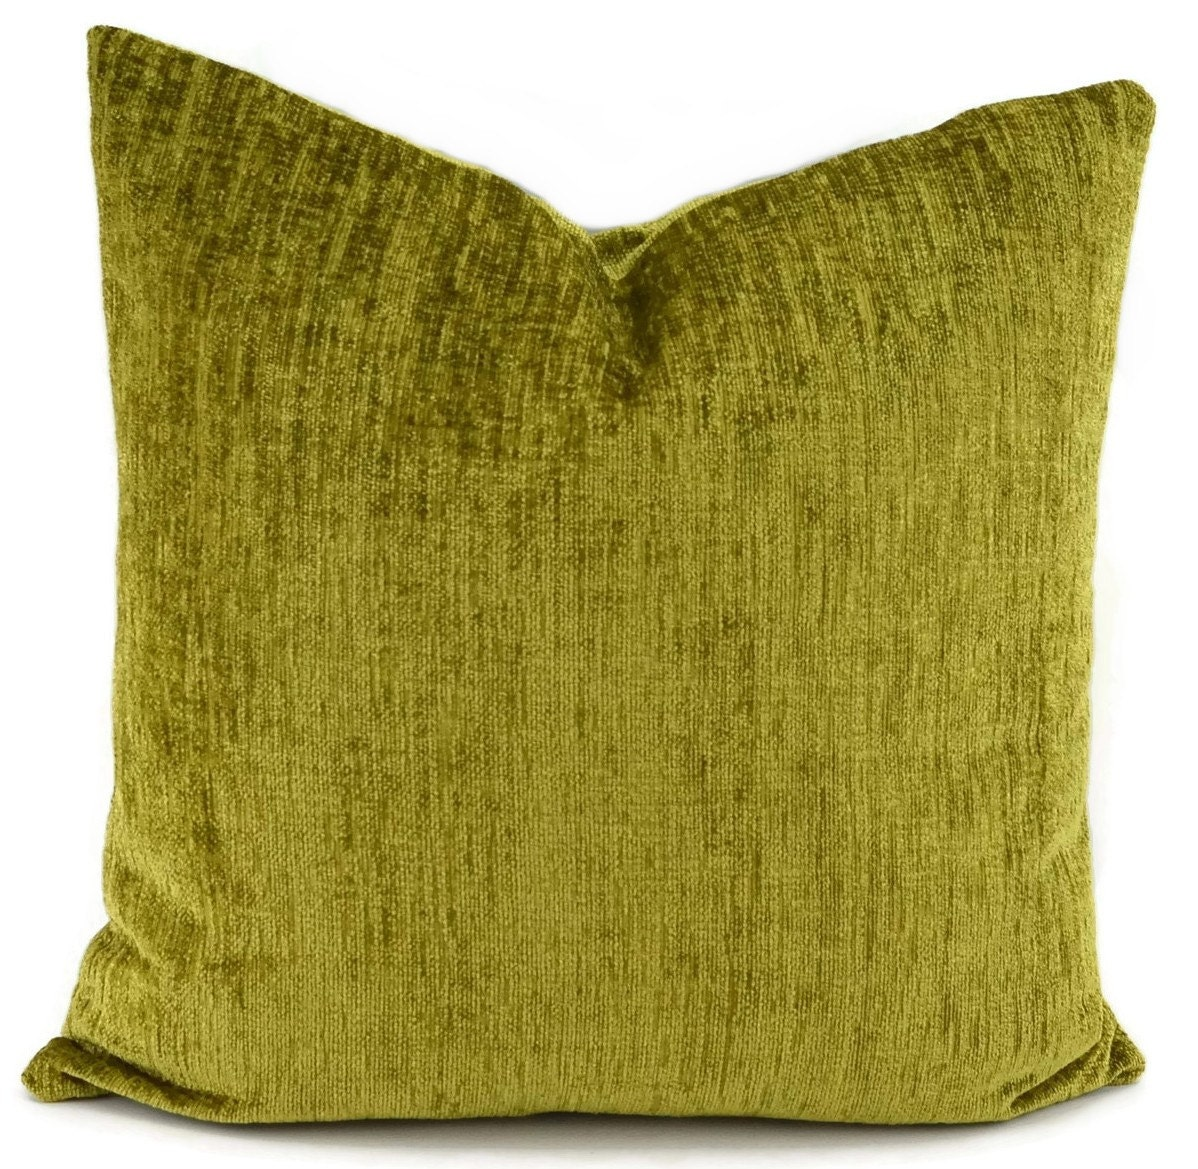 Chenille Throw Pillow Covers : Green Chenille Throw Pillow Cover Lime Green Chenille Lumbar